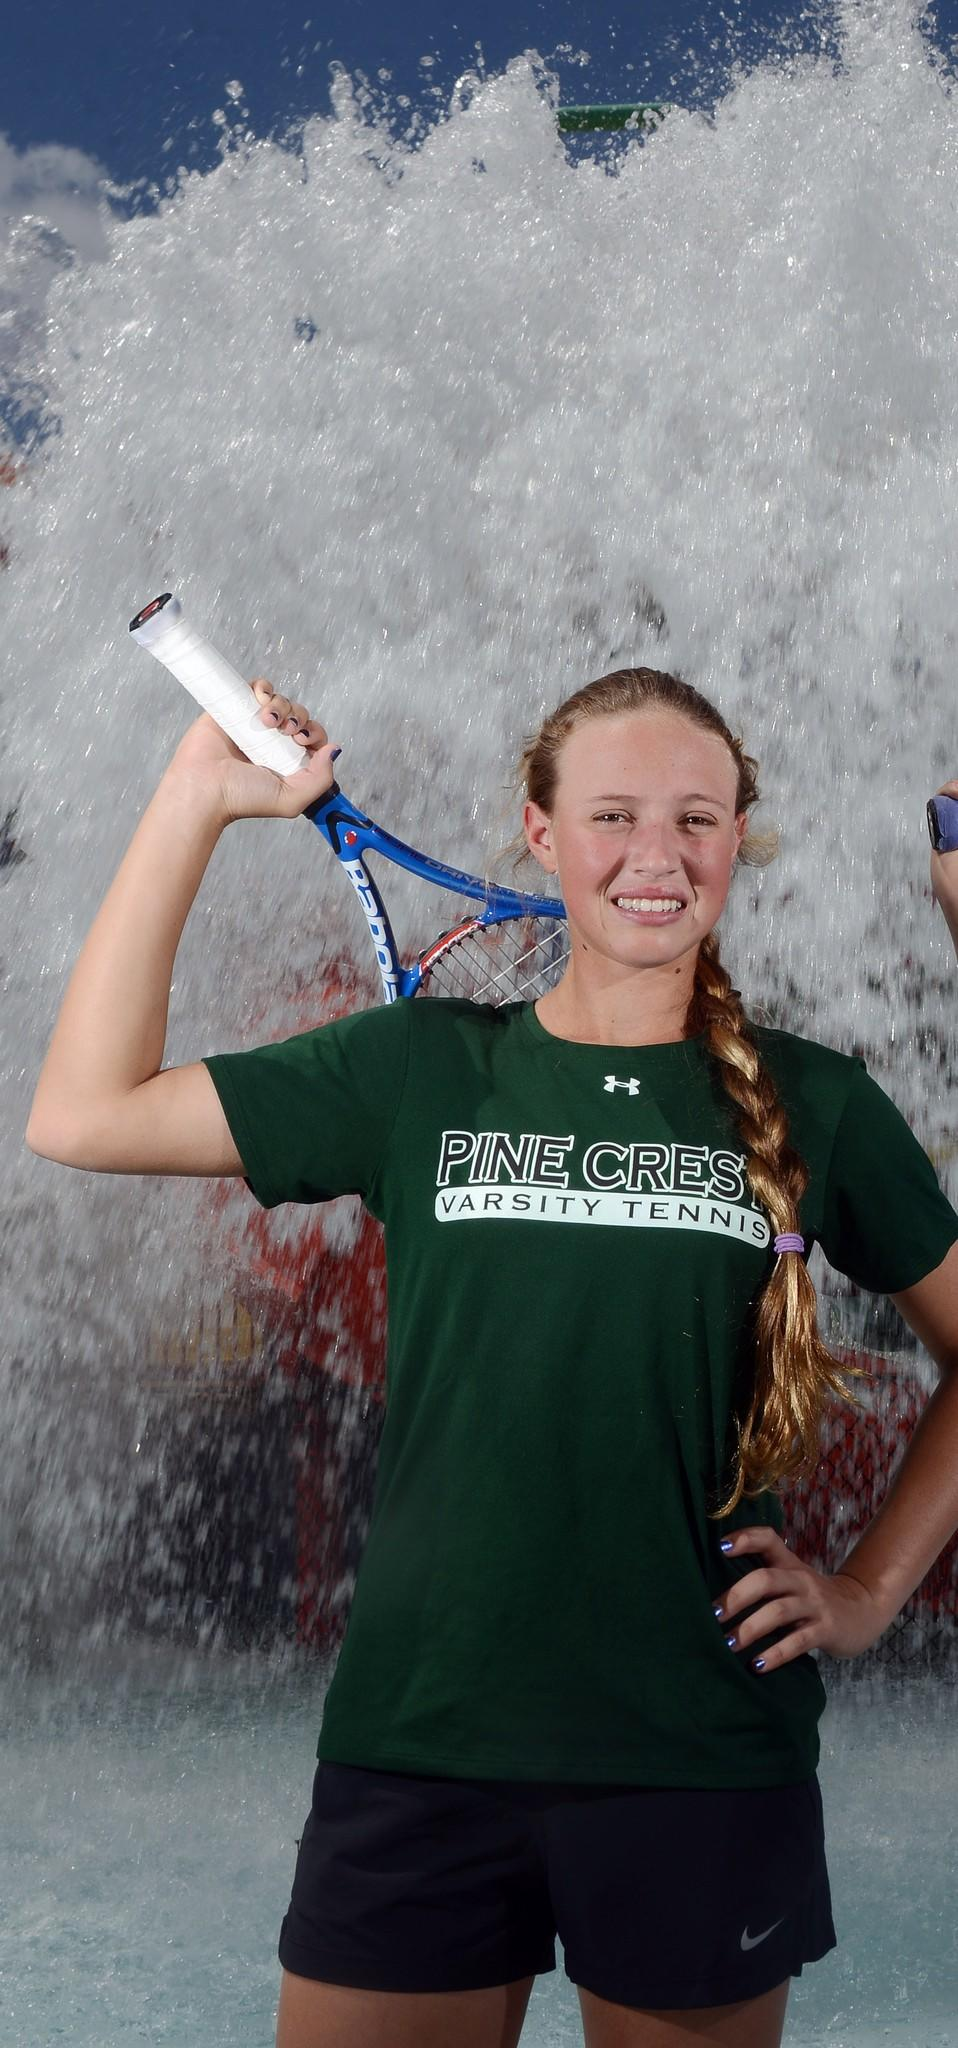 Pine Crest's Stephanie Taylor is the Broward girls tennis Player of the Year.